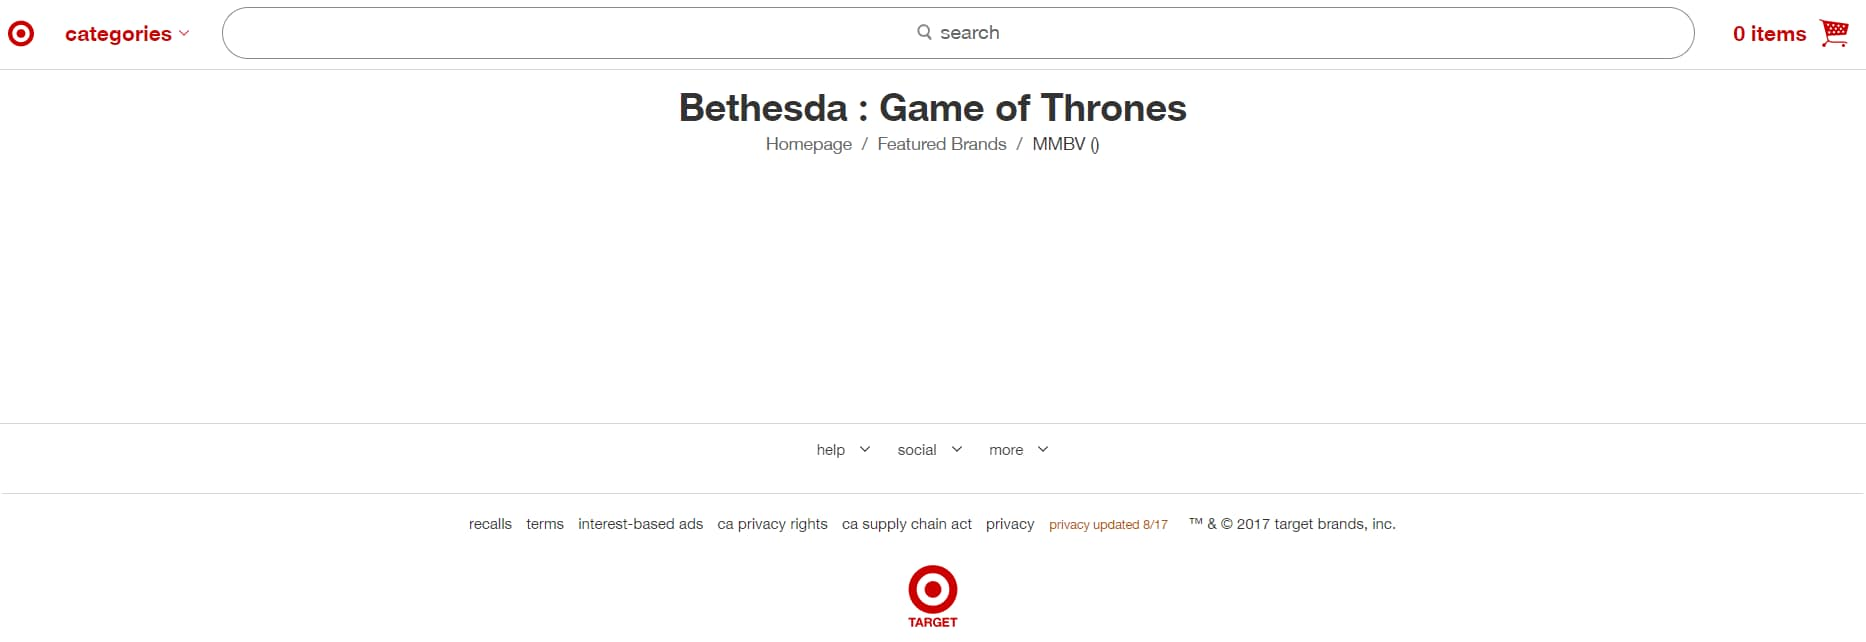 bethesda-game-of-thrones